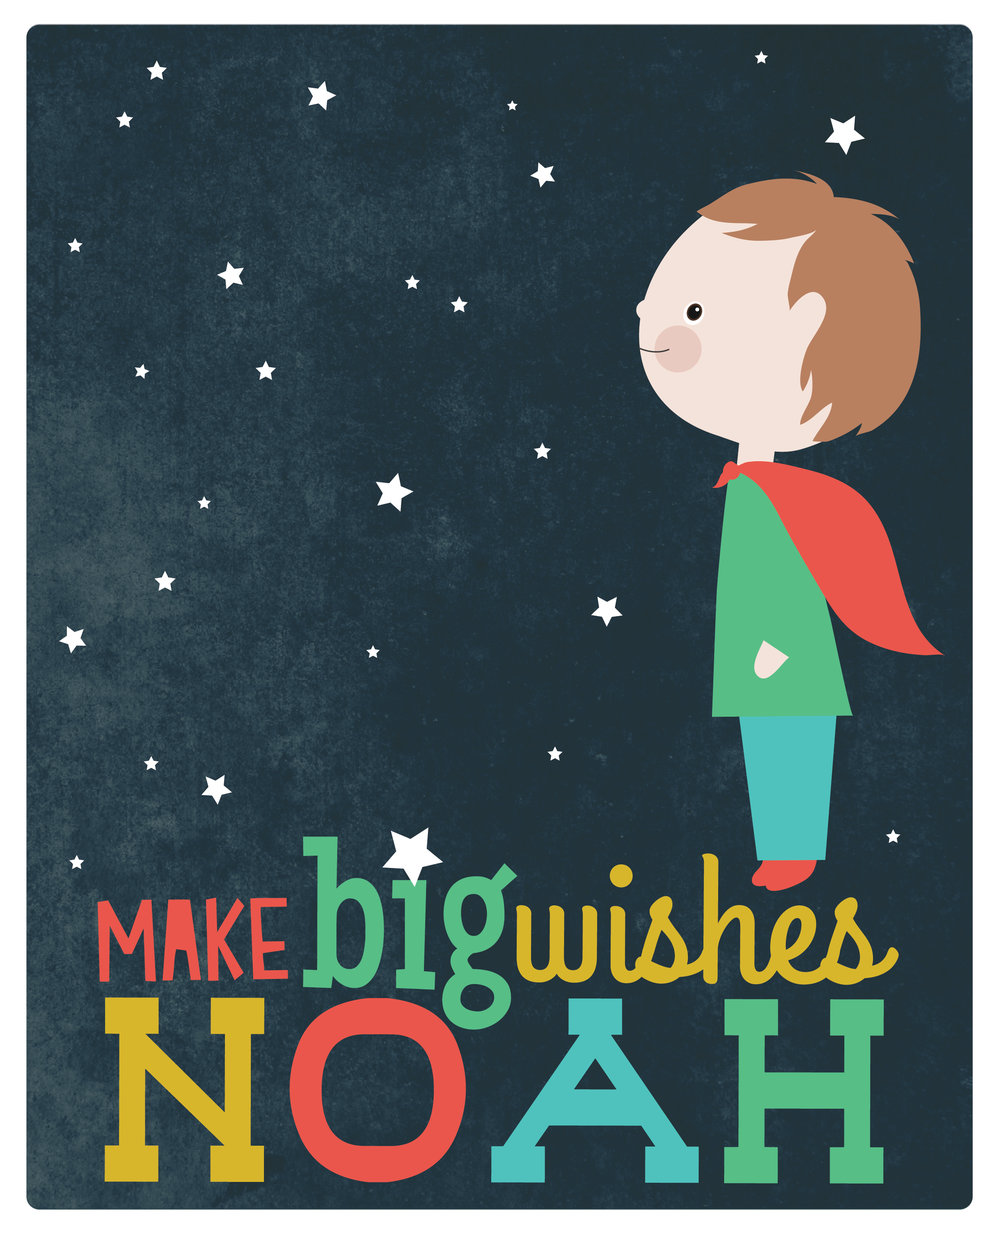 big wishes BOY NOAH-01.jpg